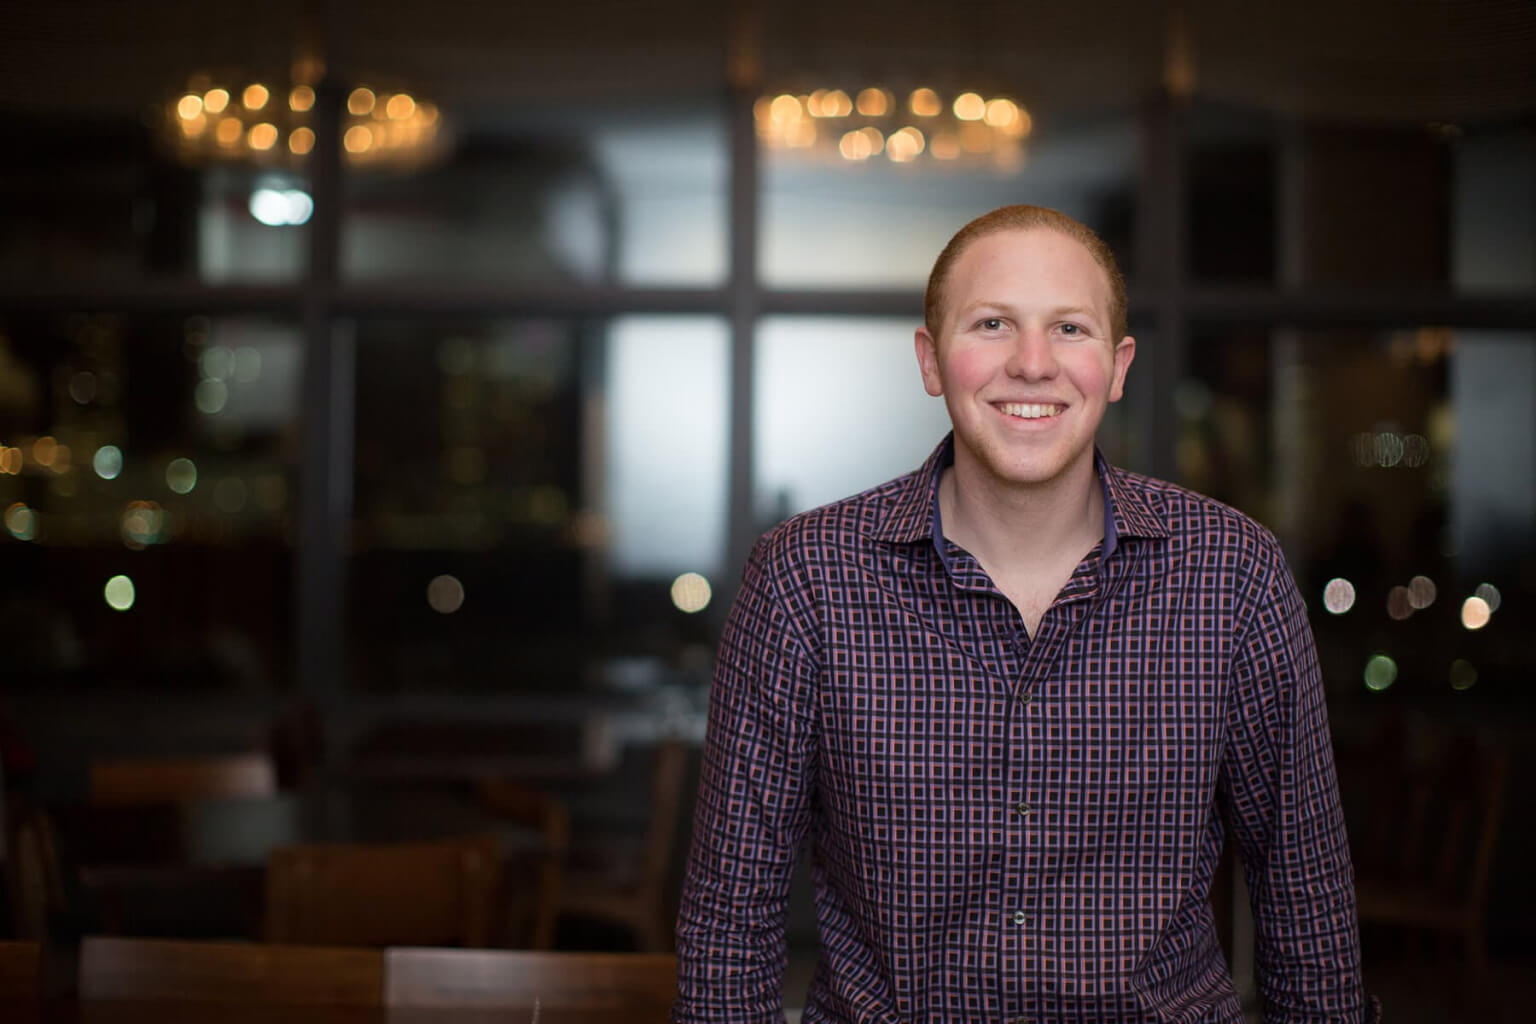 Habits and Routines of Entrepreneur, Speaker and Author Jared Kleinert